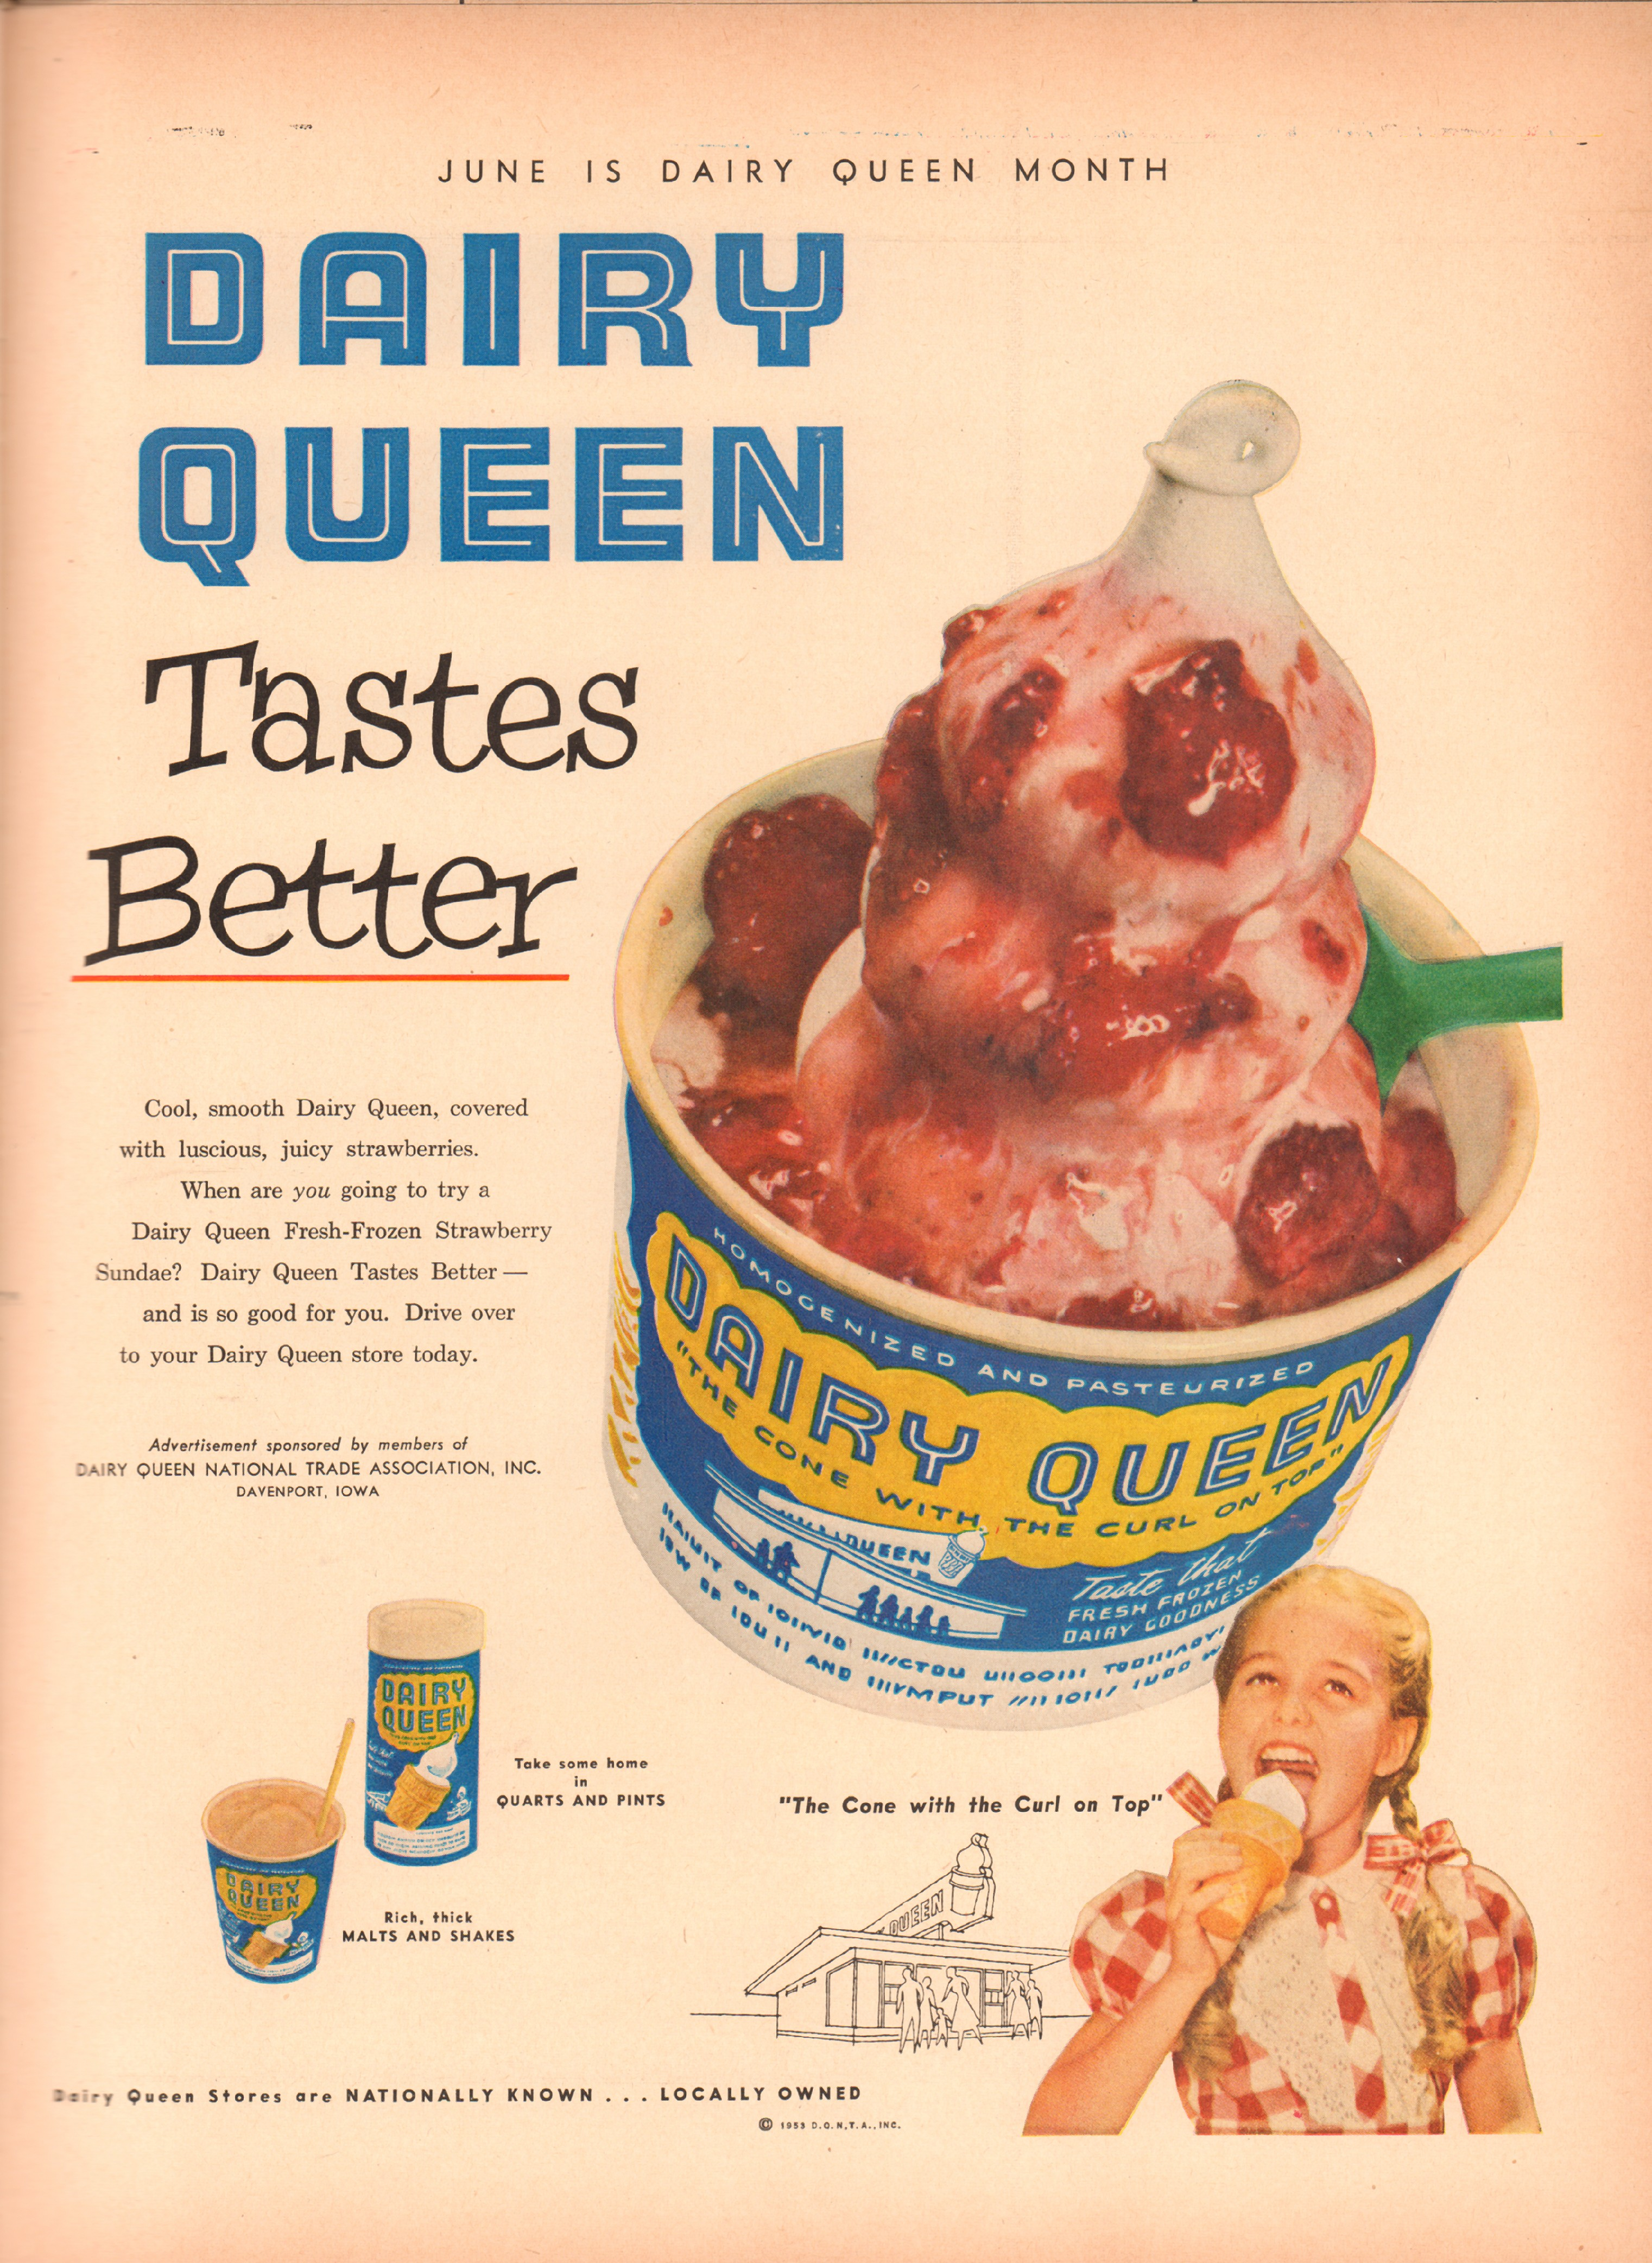 Dairy Queen - published in Life - June 15, 1953